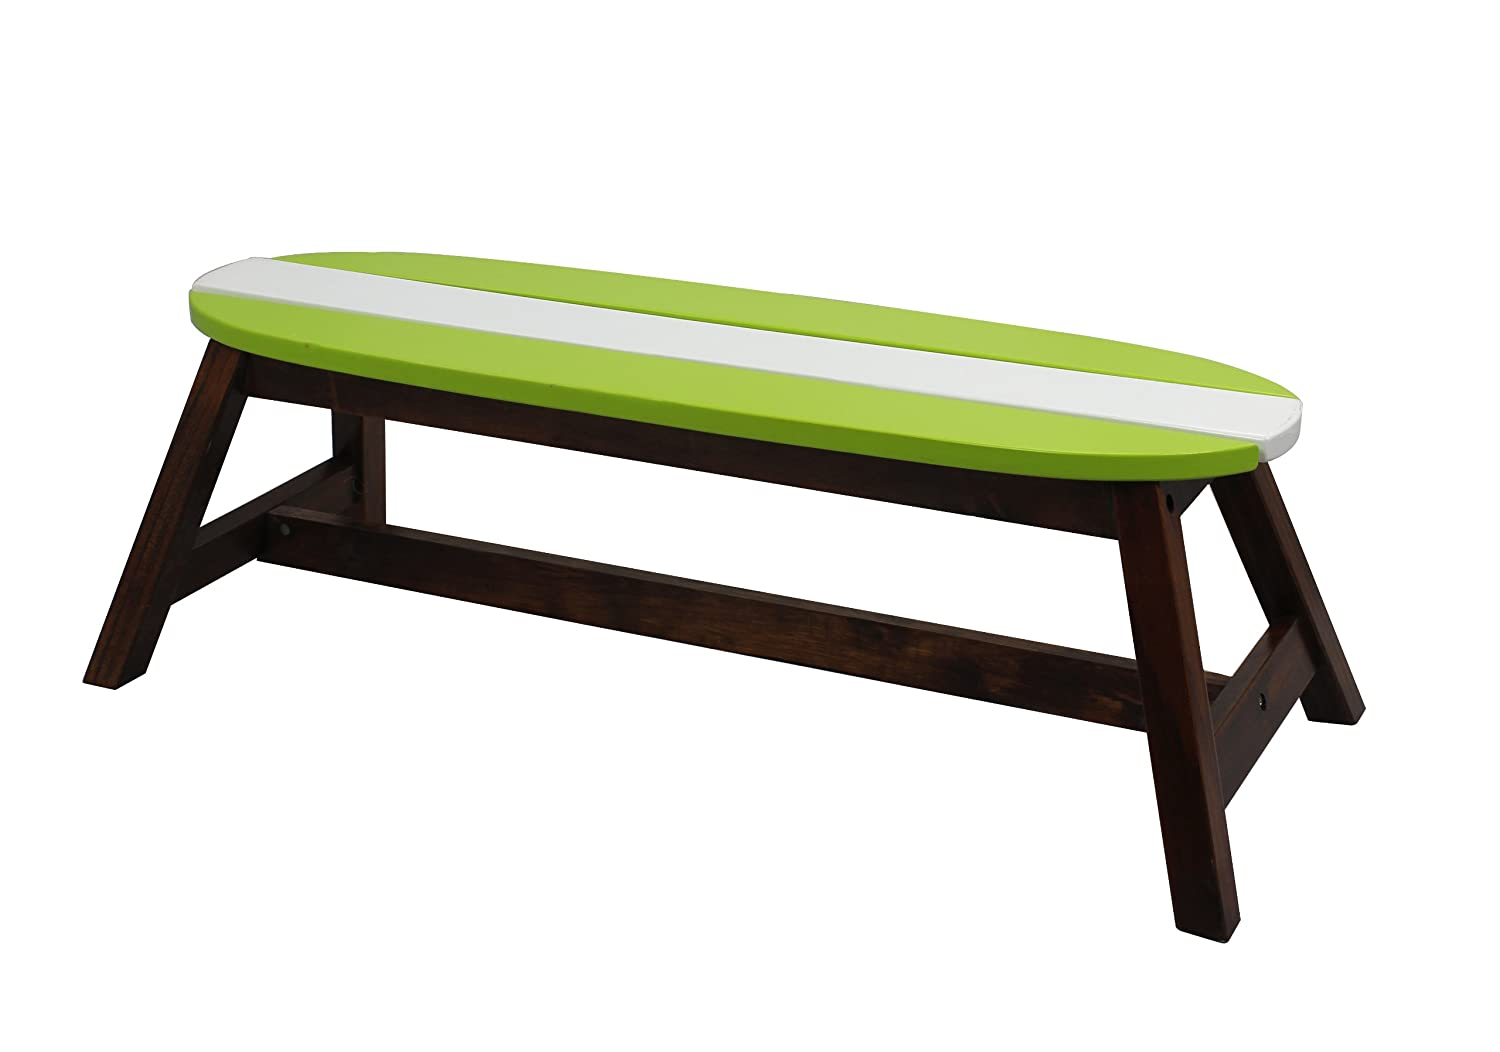 Amazon.com: Teamson Kids   Kids Surfboard Outdoor Table And Bench Set With  Umbrella   Grass Green/ White: Toys U0026 Games